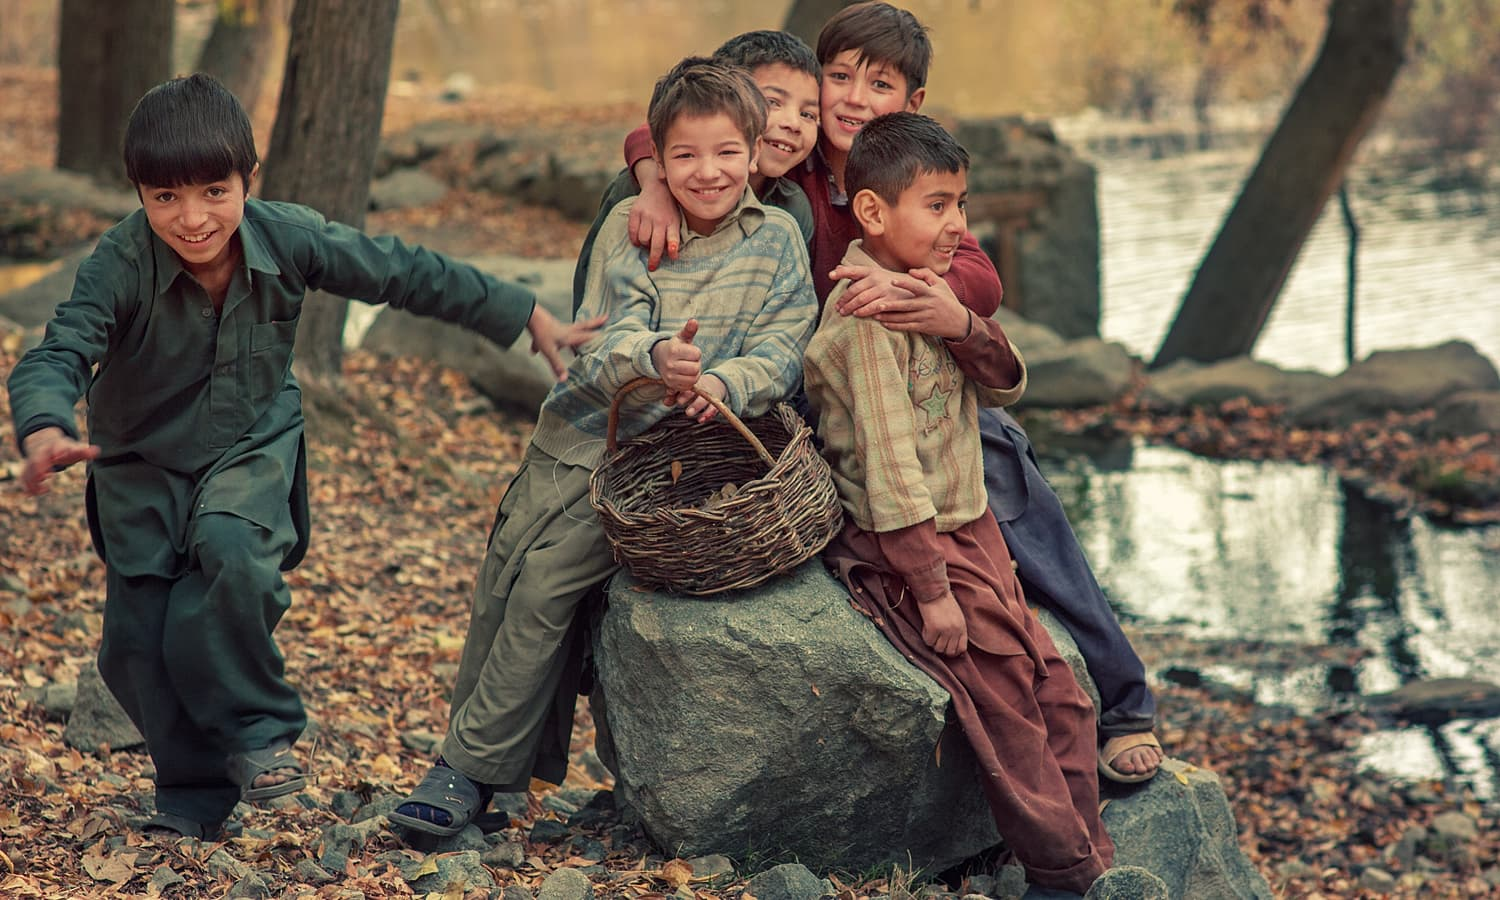 Children in Khaplu. — S.M.Bukhari